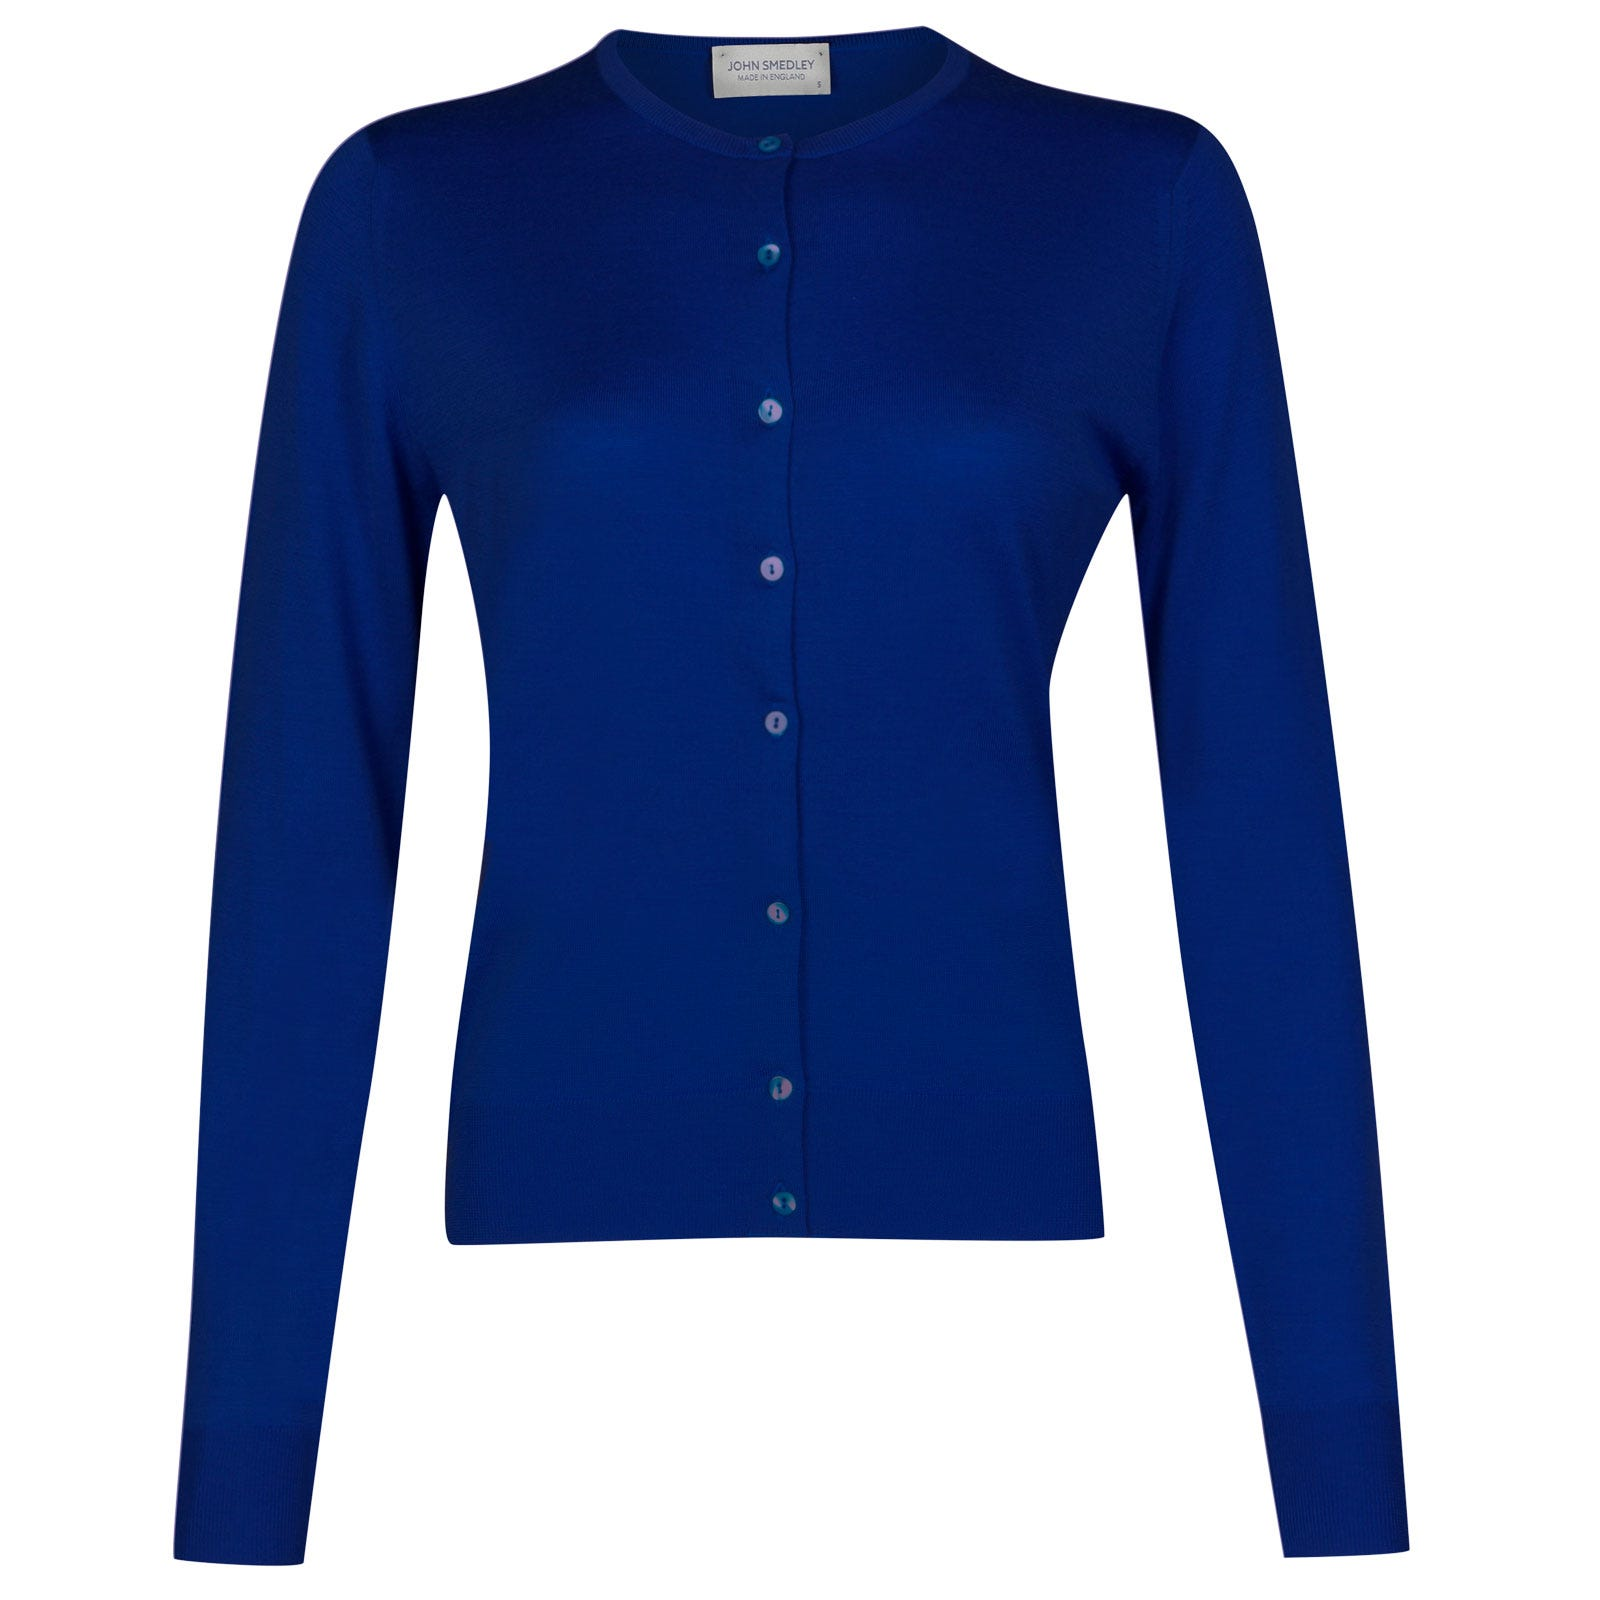 John Smedley pansy Merino Wool Cardigan in Coniston Blue-XL